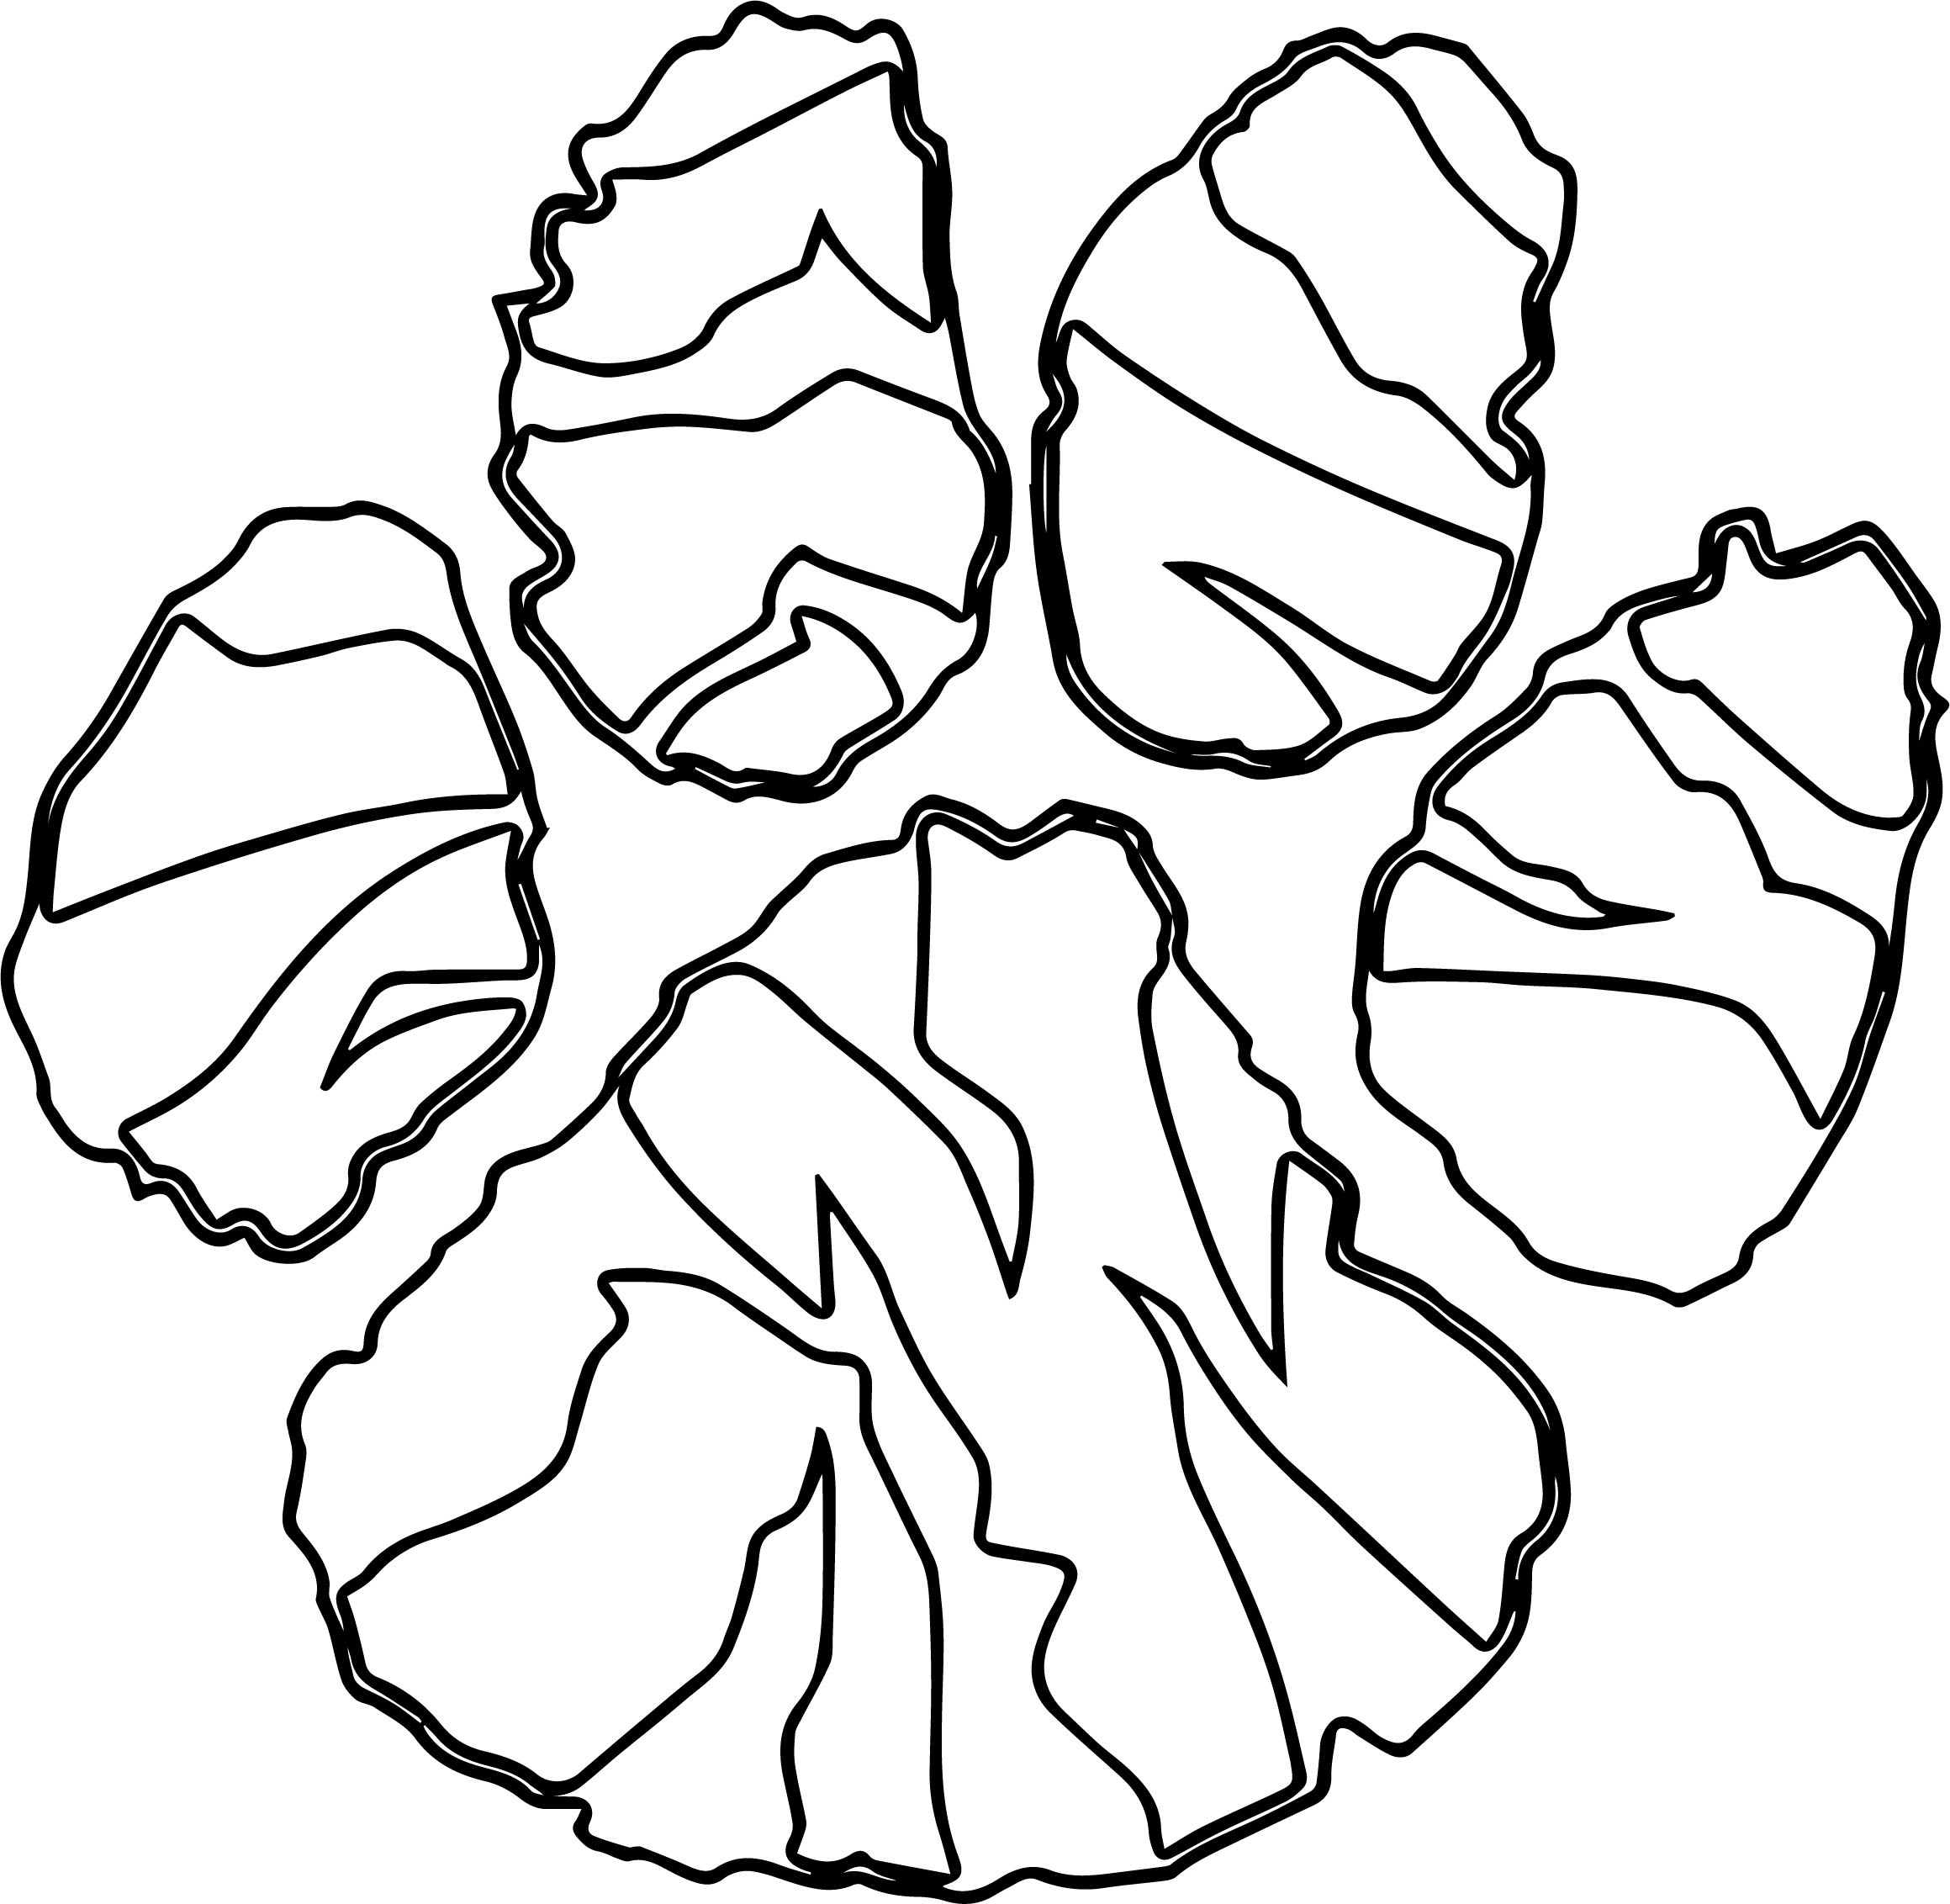 Tiger Forest Footprint Coloring Page